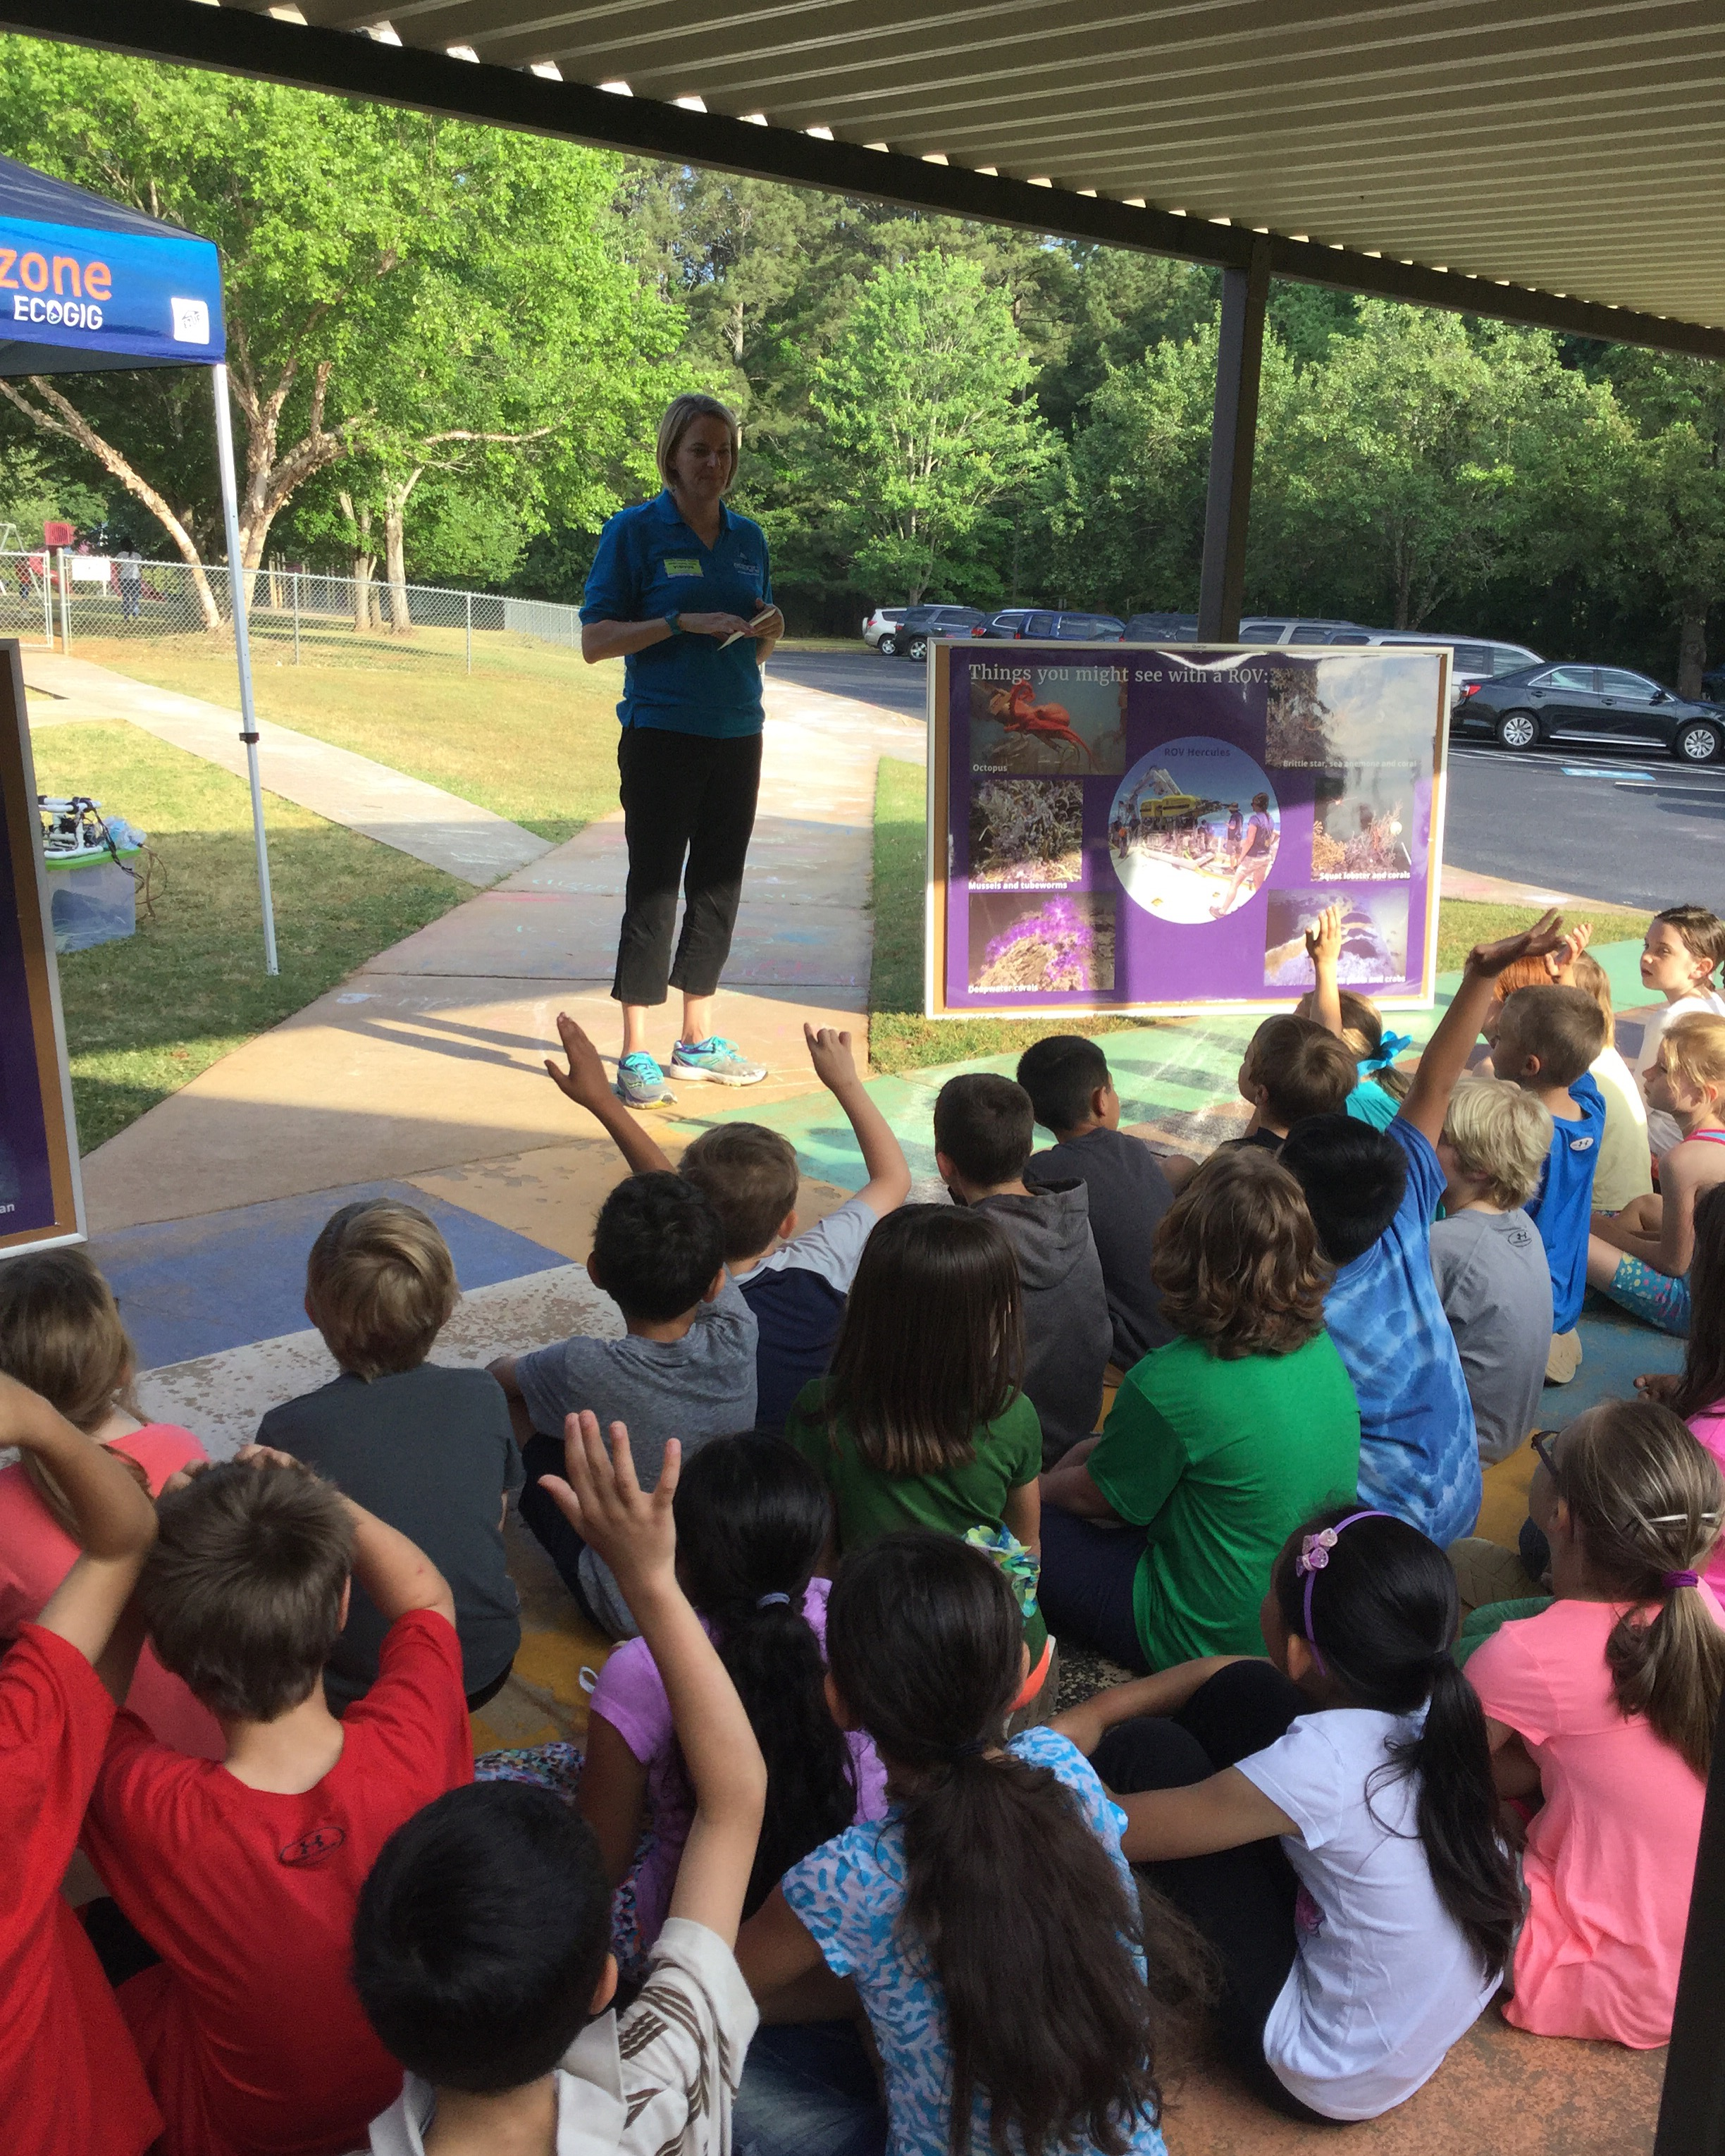 <div style='color:#000000;'><br /><br /><h2>ECOGIG Outreach and Communications Director Sara Beresford talks to Oconee Primary kids about why and how we explore the oceans.</h2>(c) ECOGIG</div>